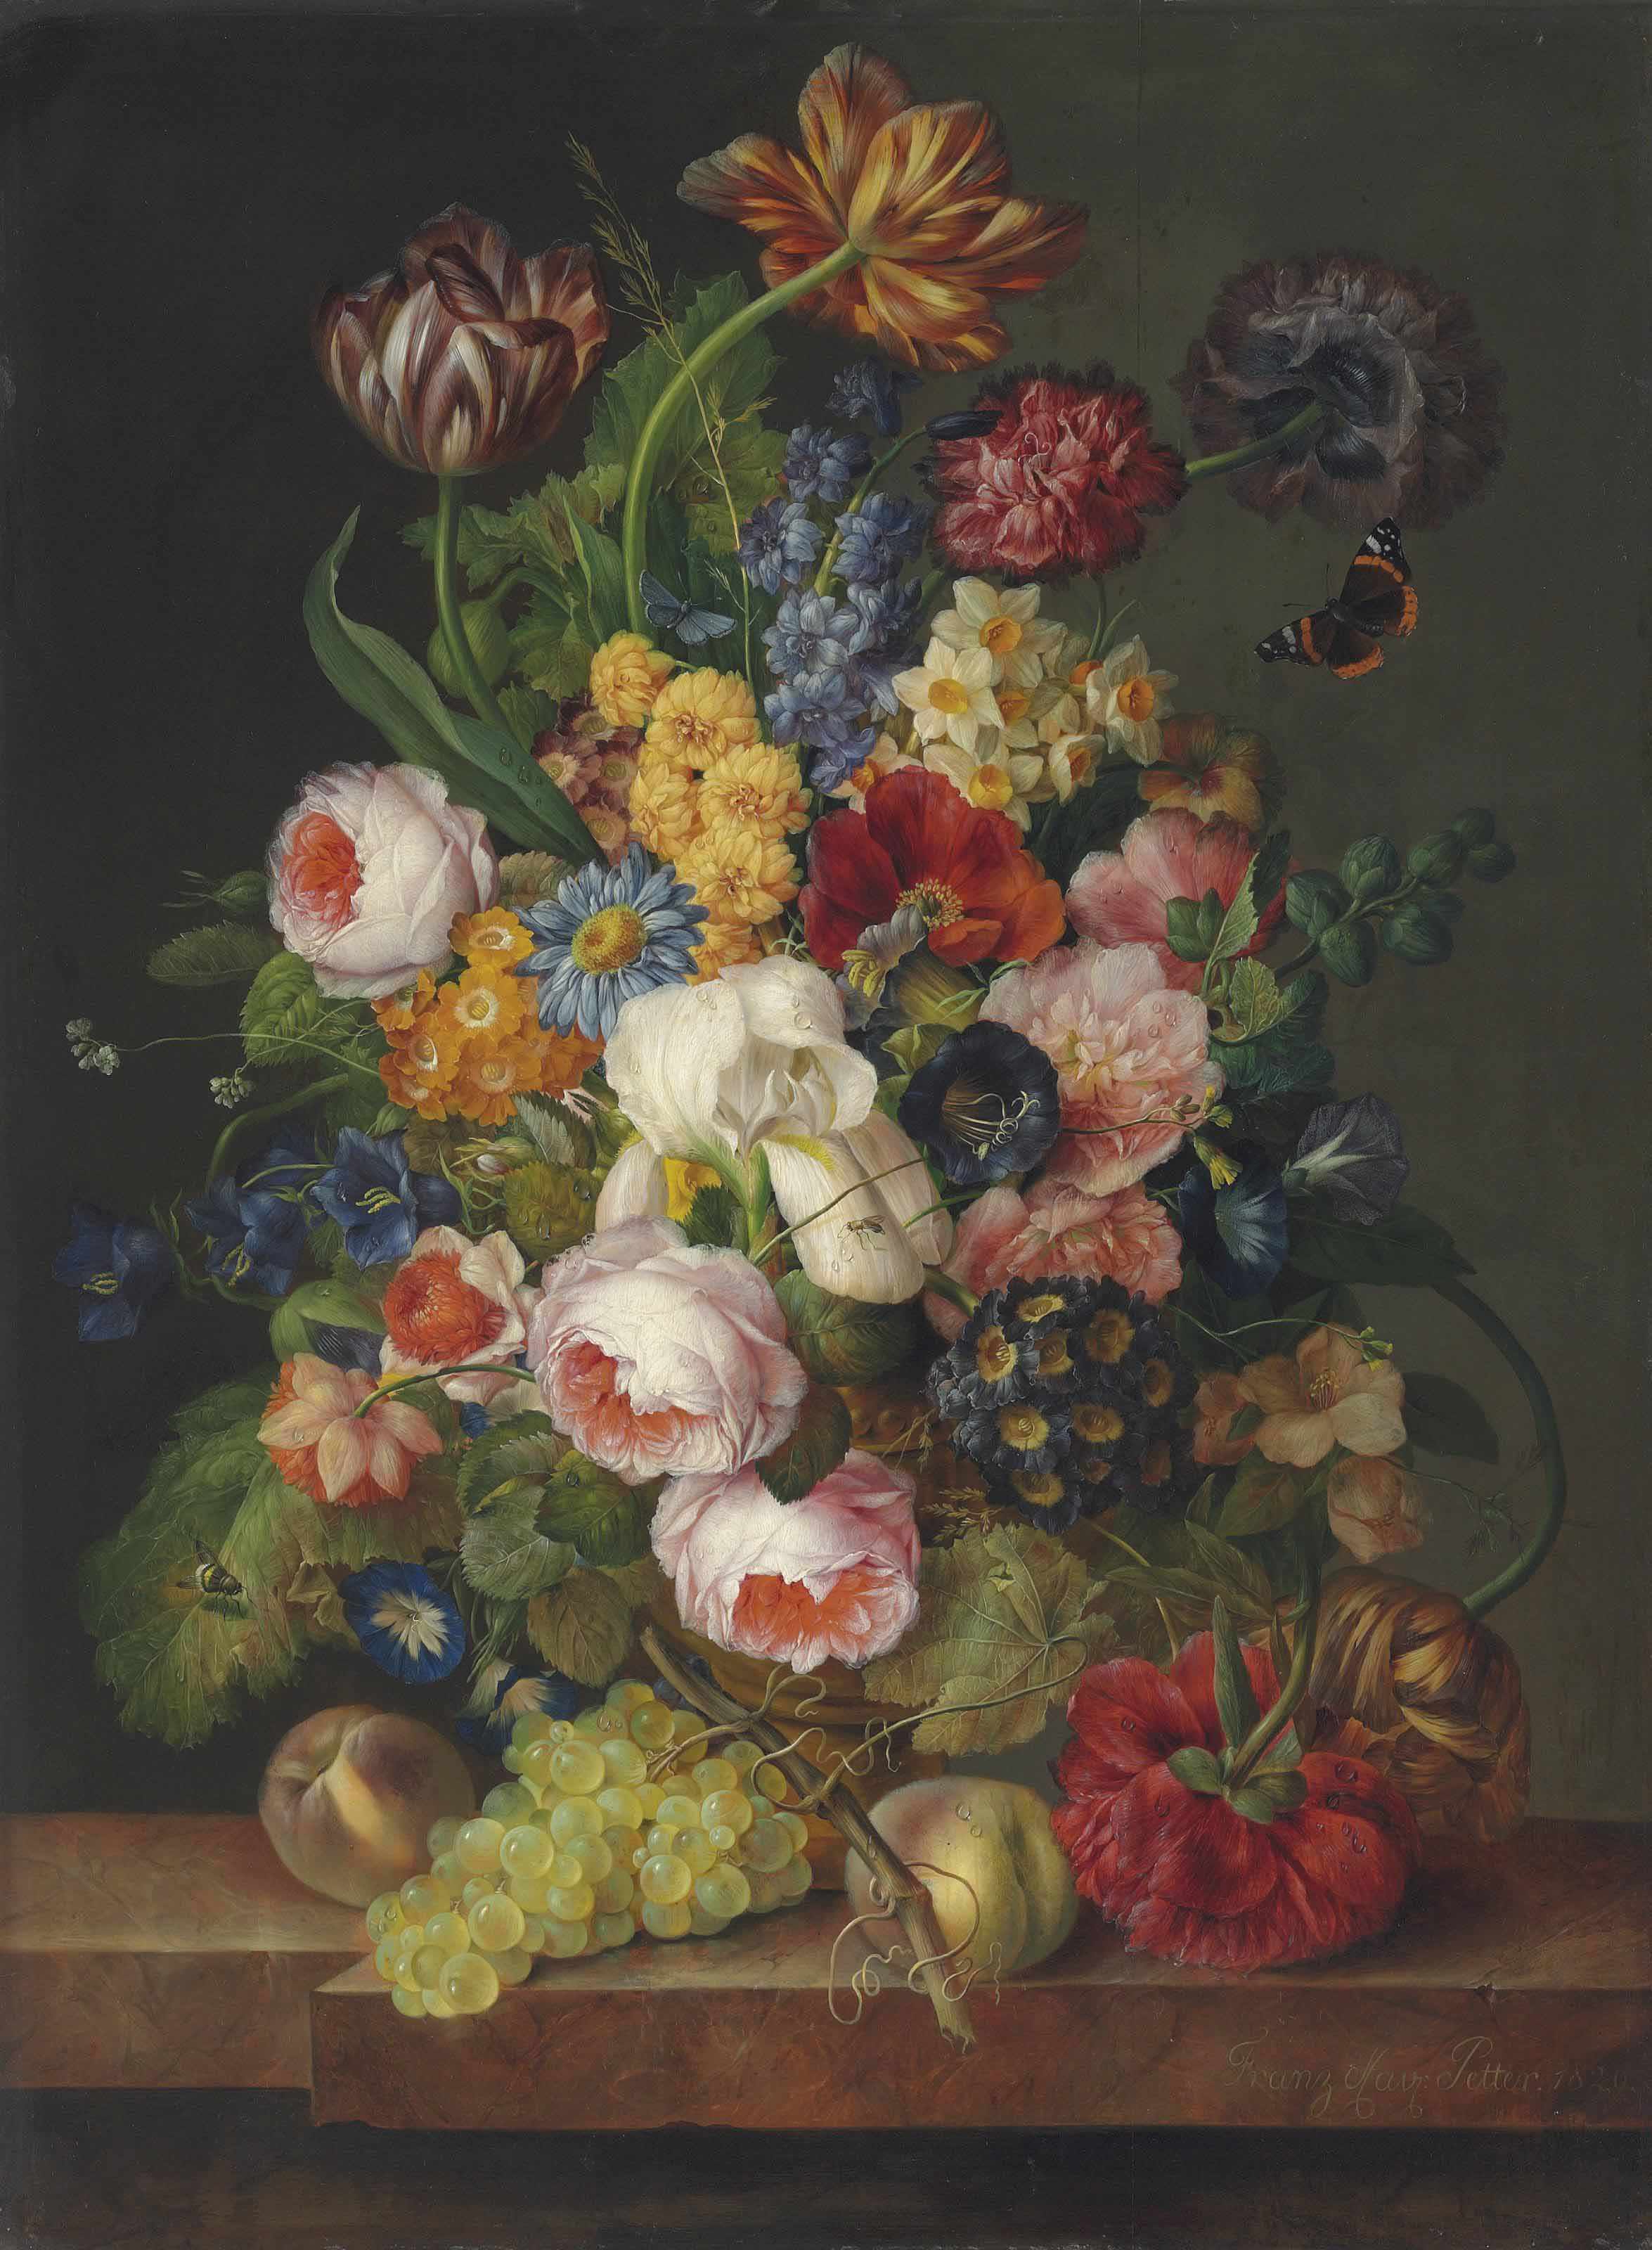 Roses, parrot tulips, an iris, daffodils, peonies, morning-glory and other flowers with a Red Admiral, a bee and other insects in a sculpted urn with peaches and grapes on a marble ledge